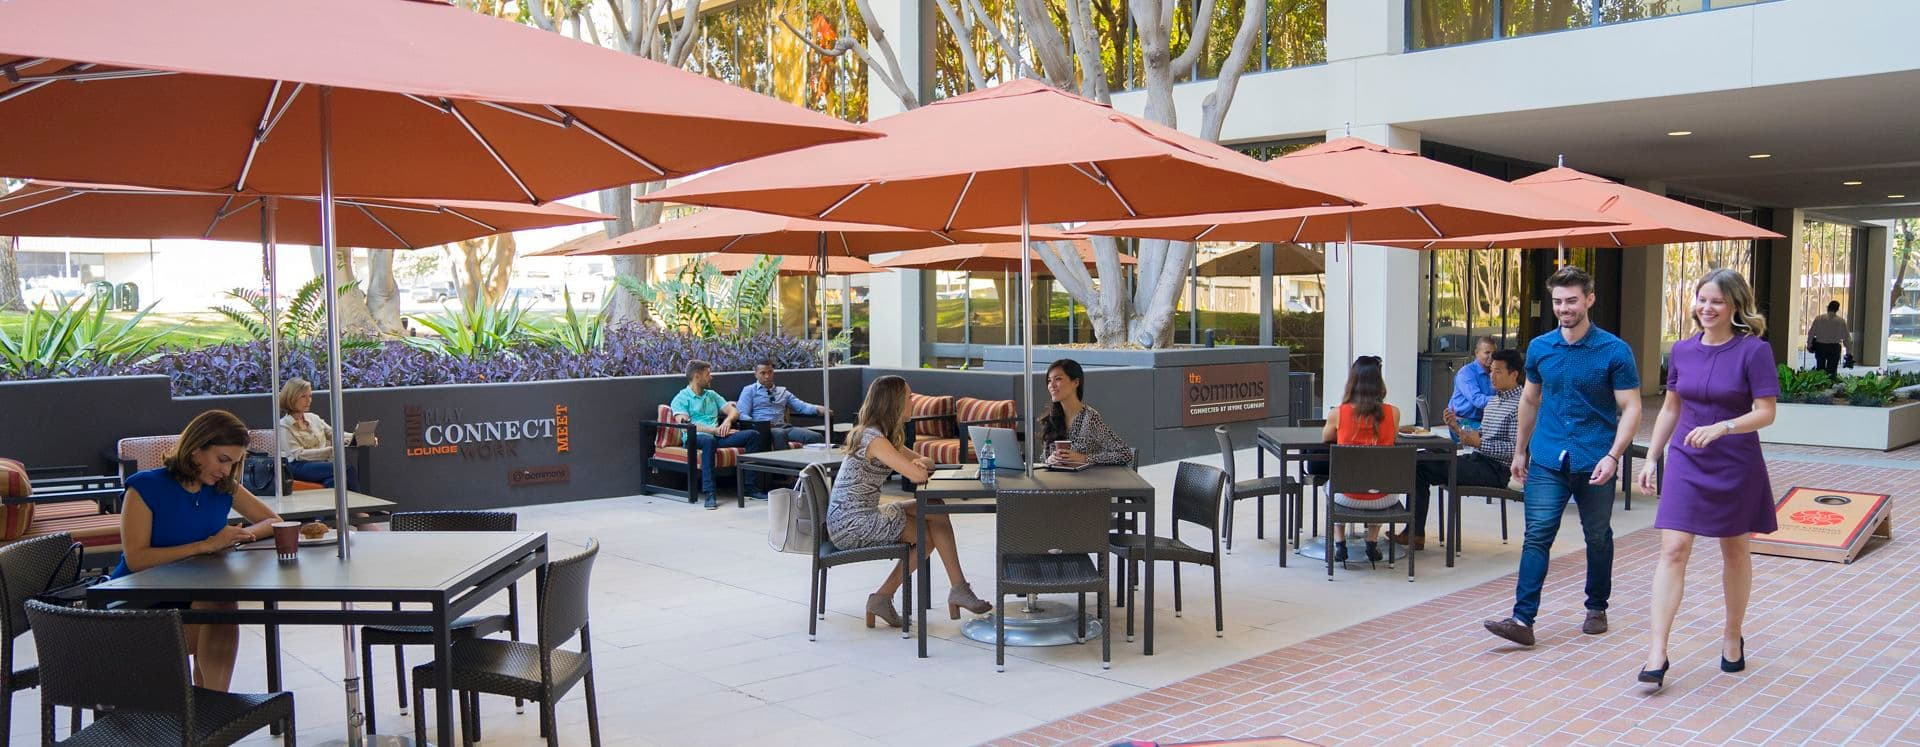 Lifestyle photography of the Commons, at La Jolla Gateway, 9171 Town Center Drive, San Diego, Ca